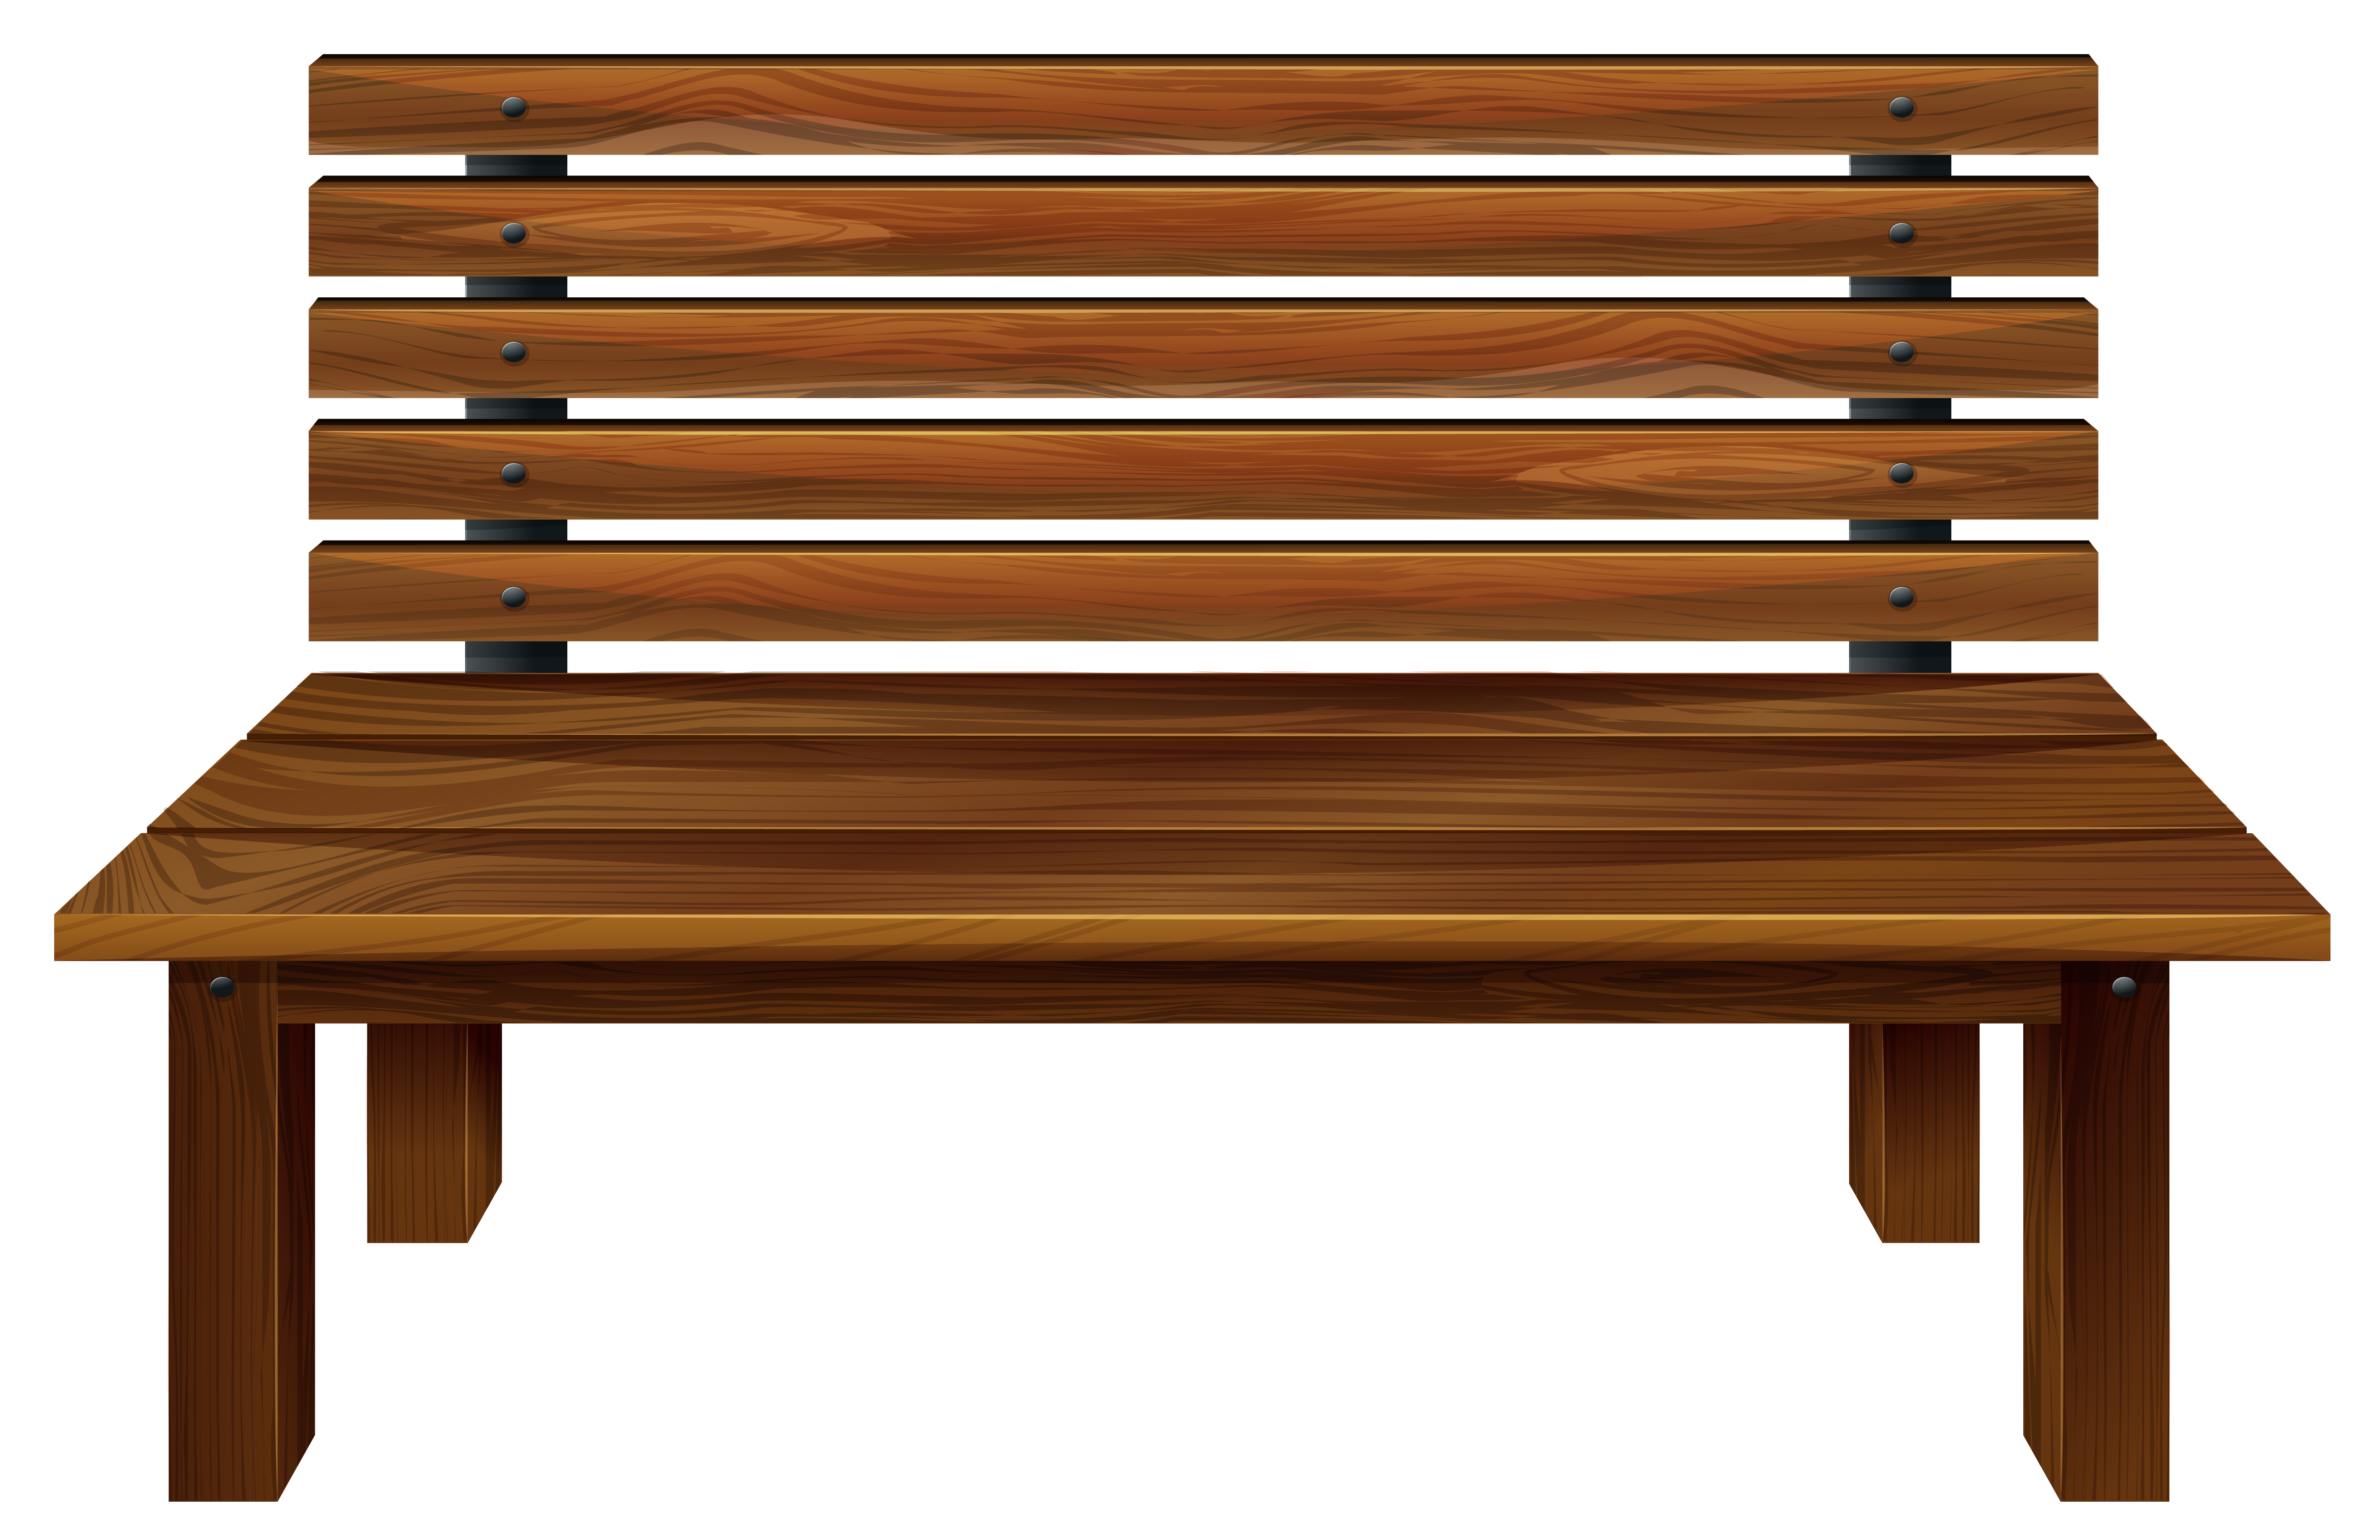 Clipart chair piano. Wooden bench png image